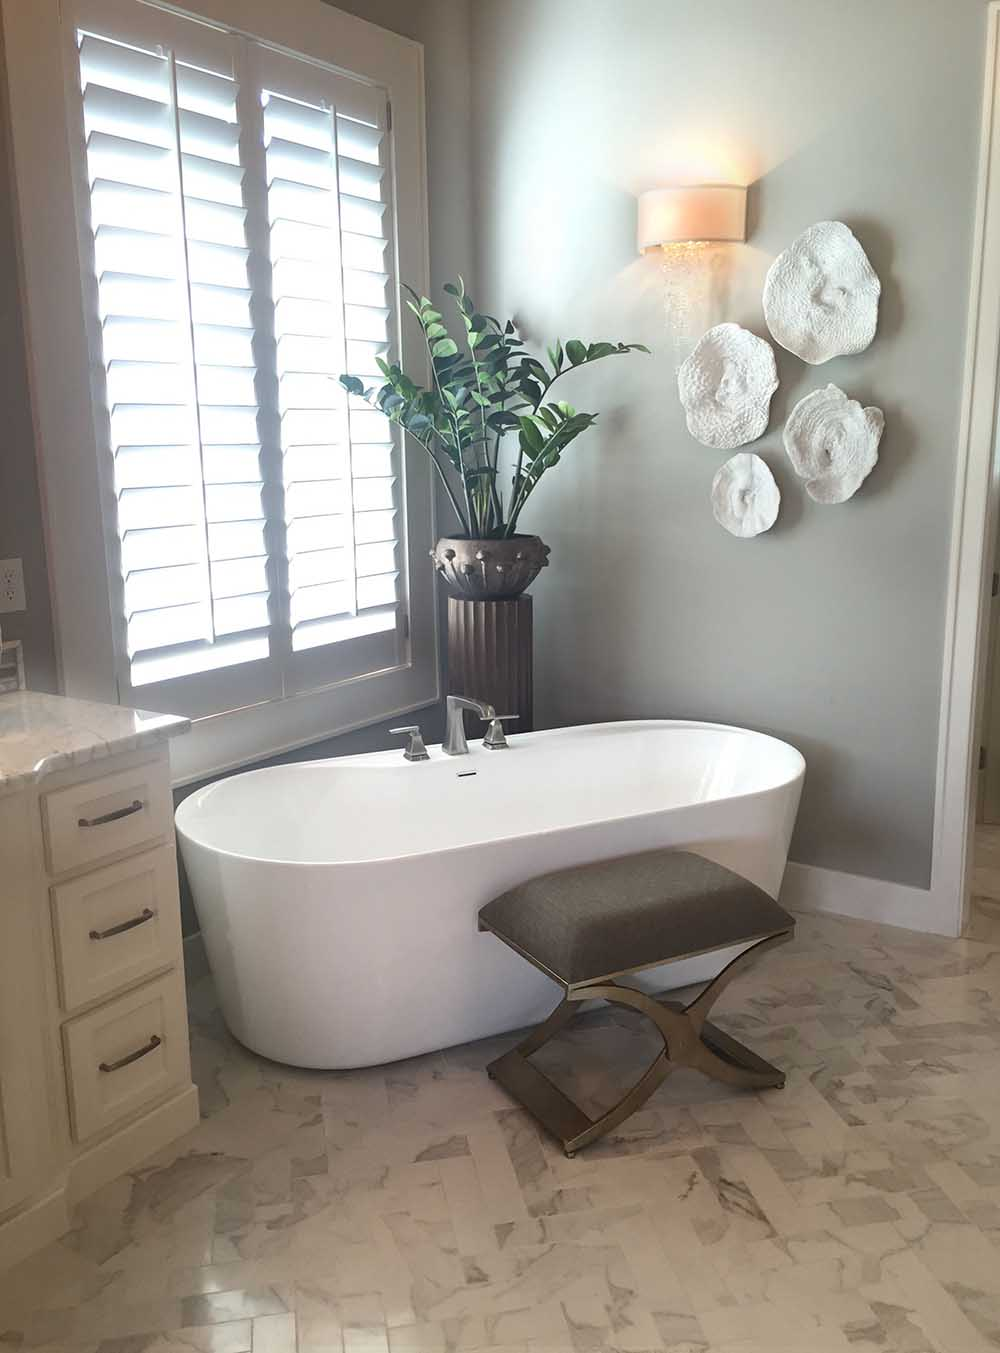 AMUR 70 FREESTANDING SOAKING TUB Carver Tubs